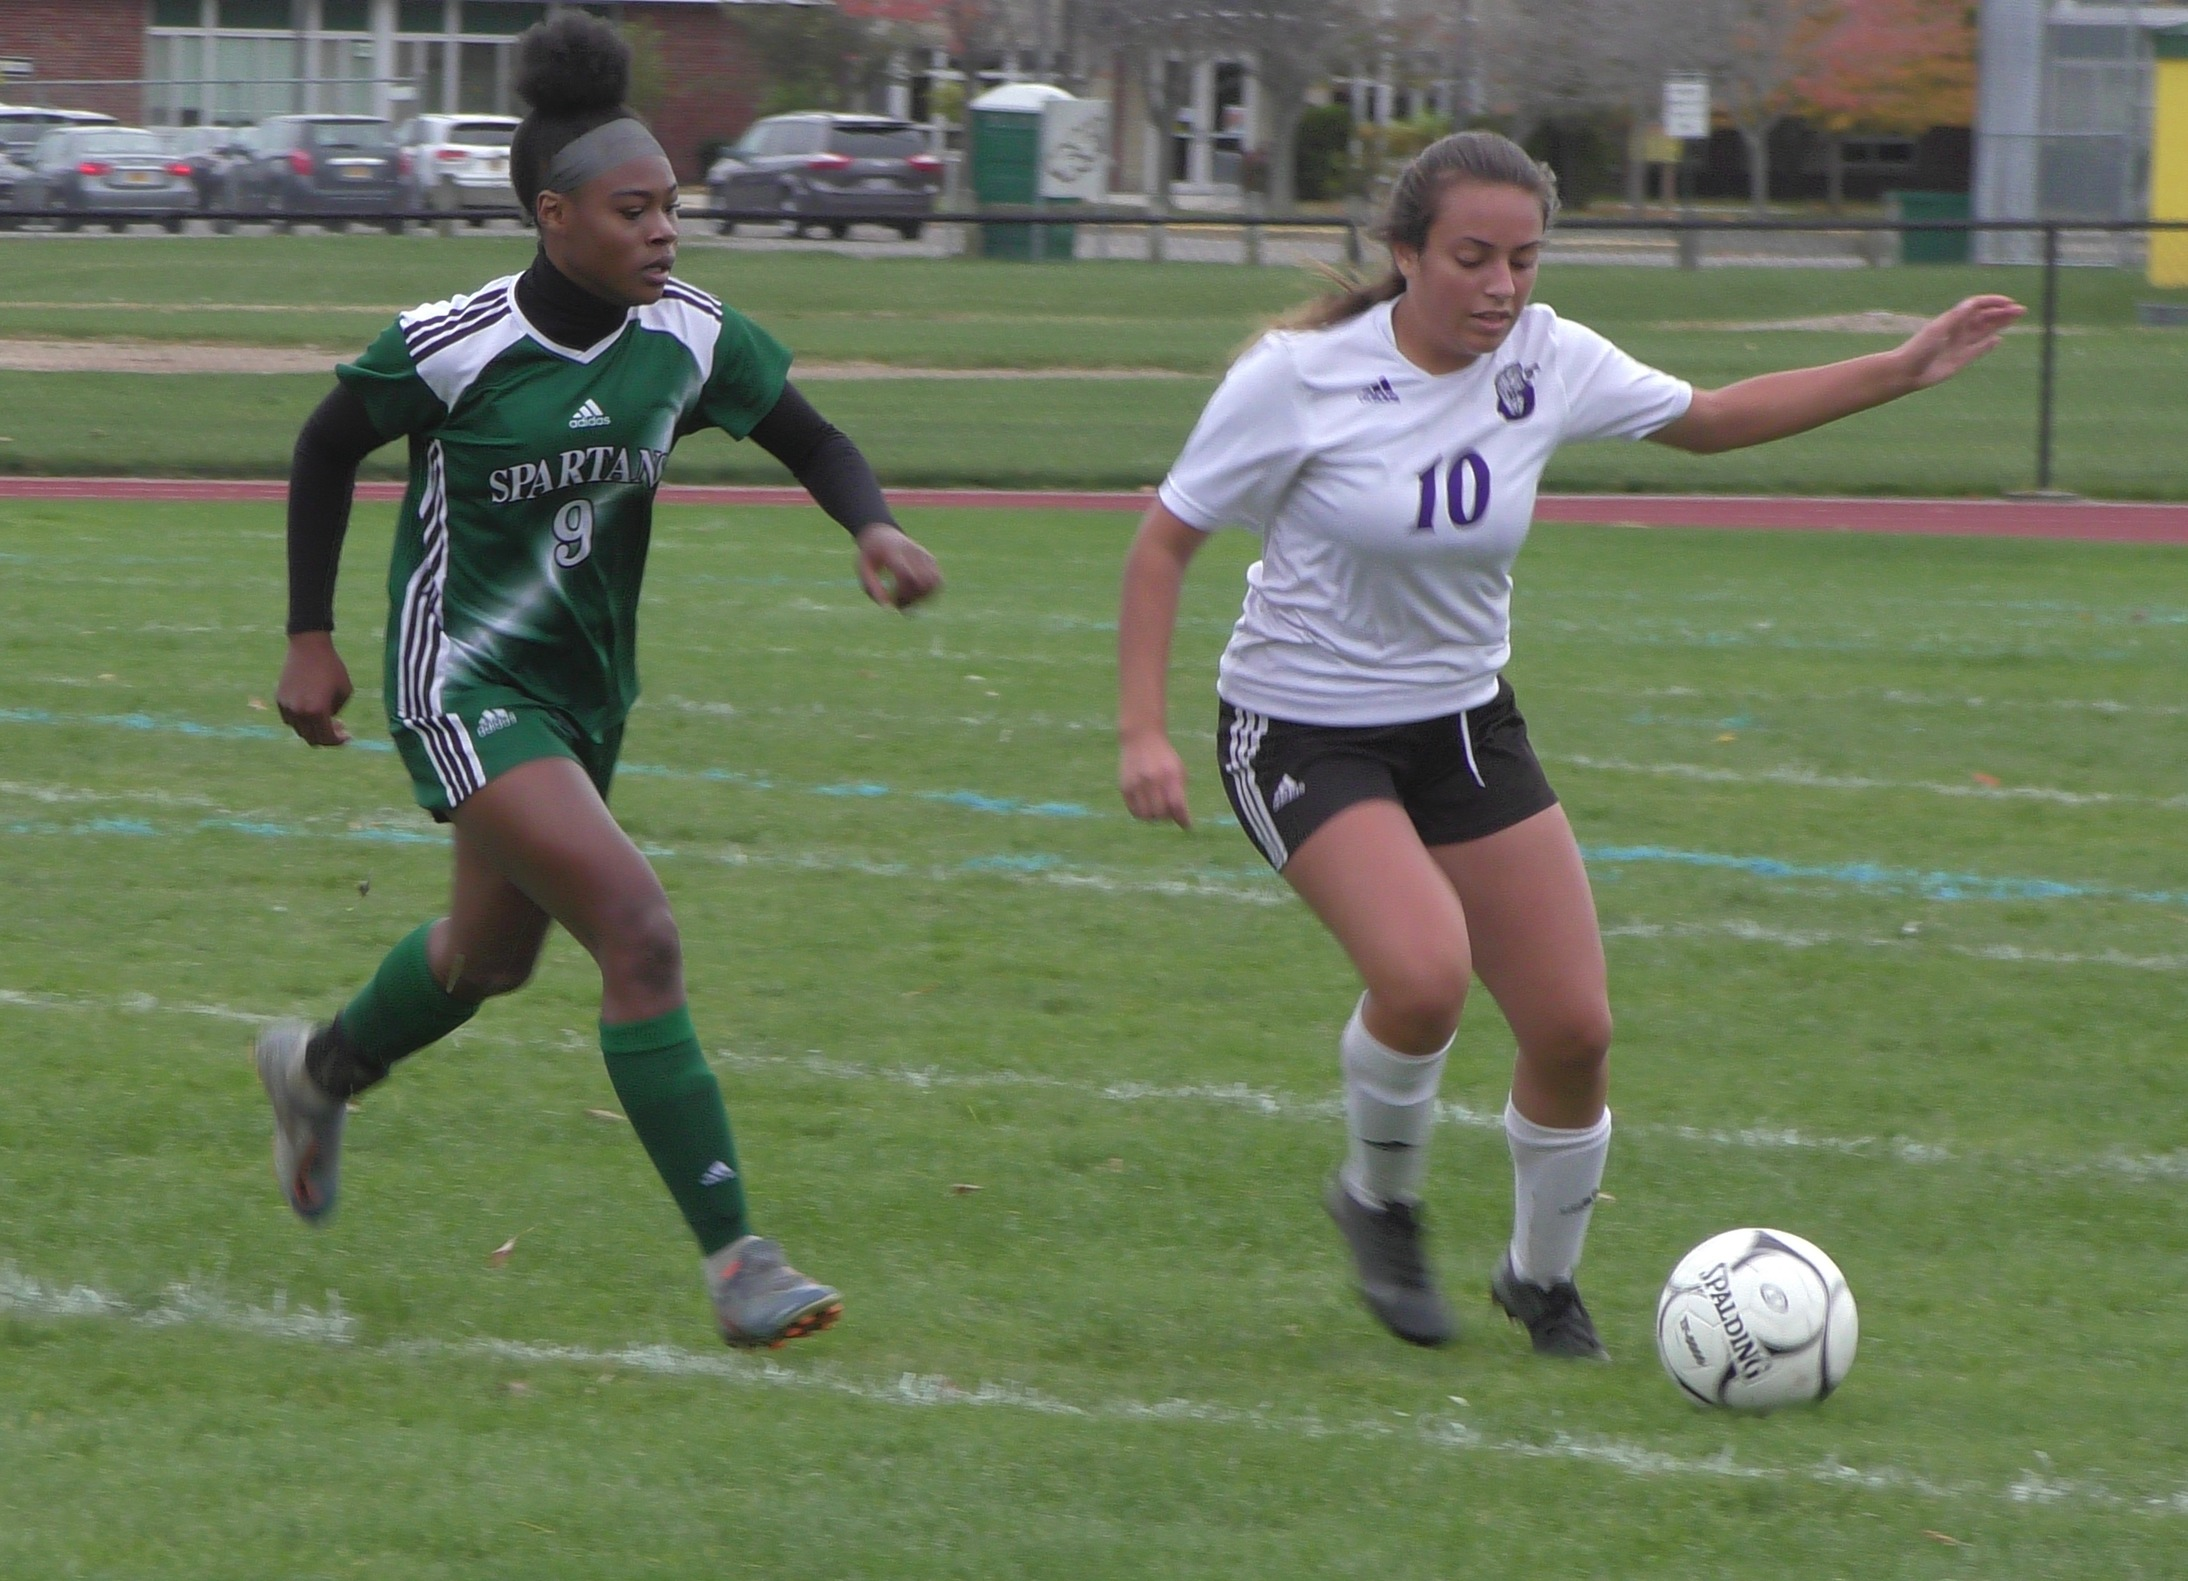 Sectional V Playoff Preview: Girls' Soccer Class B1 ...